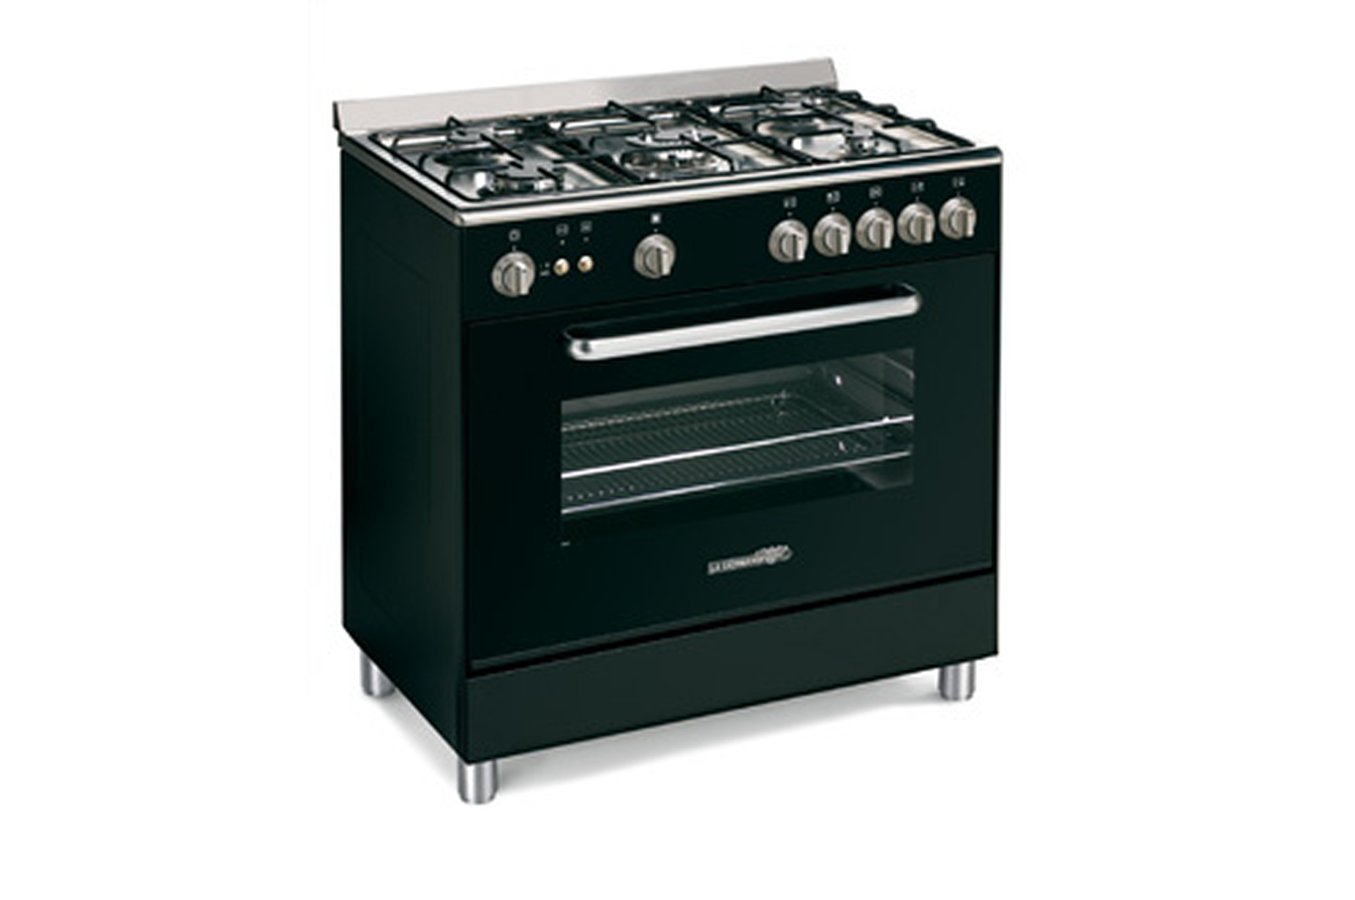 Piano de cuisson la germania t85c20ndt noir 3557600 darty - Cuisiniere la germania ...